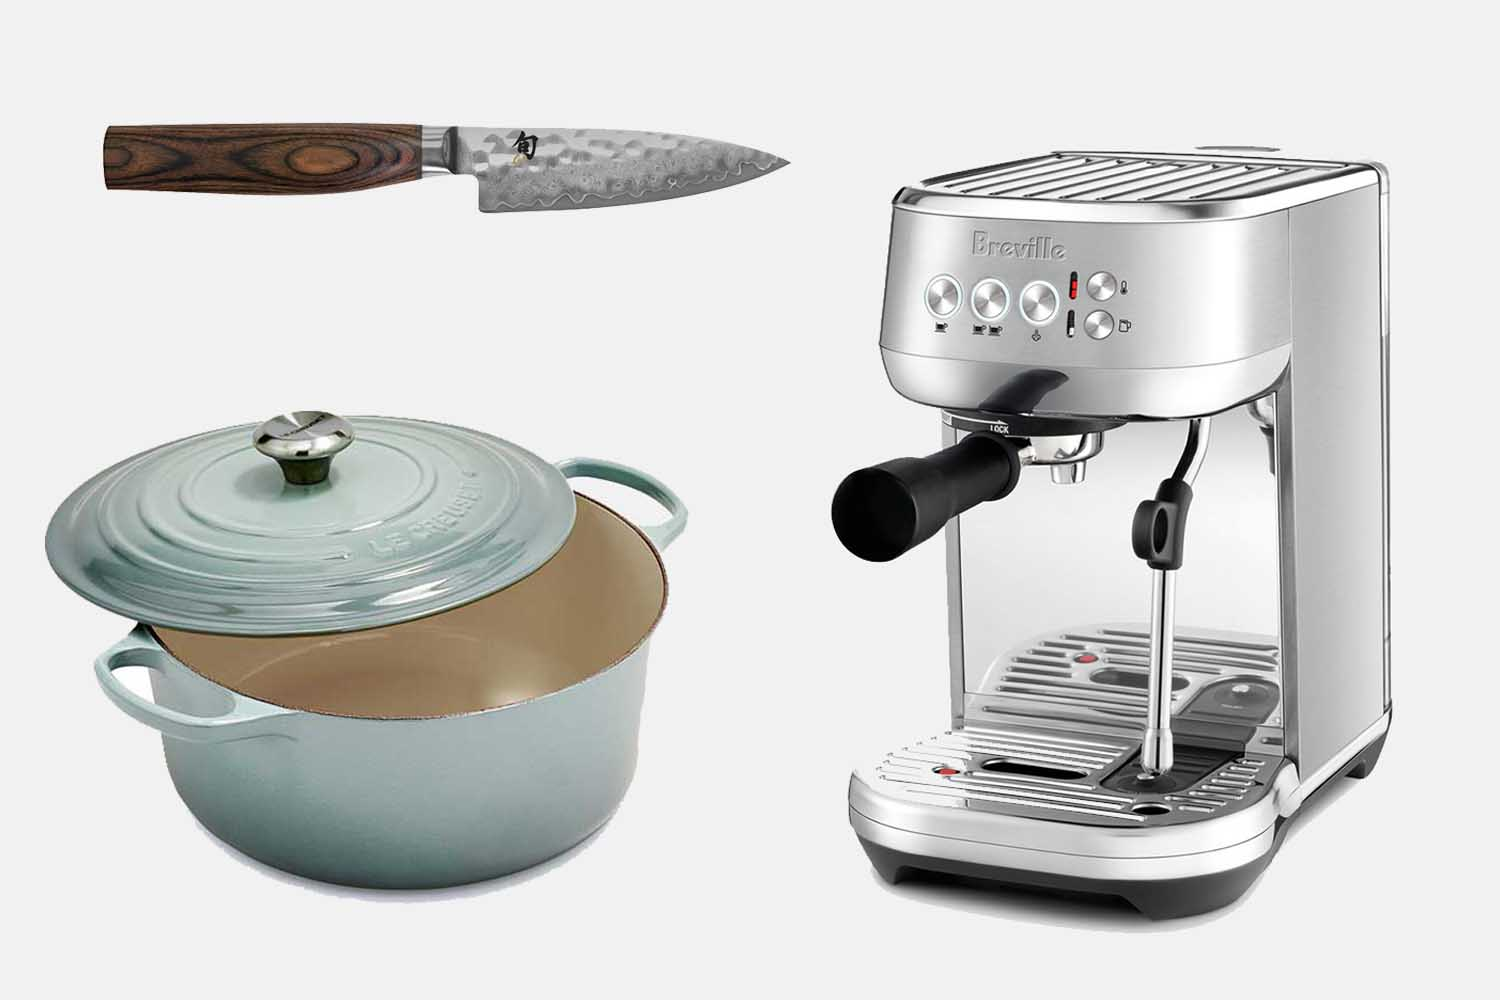 All We Do Is Cook Now. These Are the Kitchen Items We're Coveting.